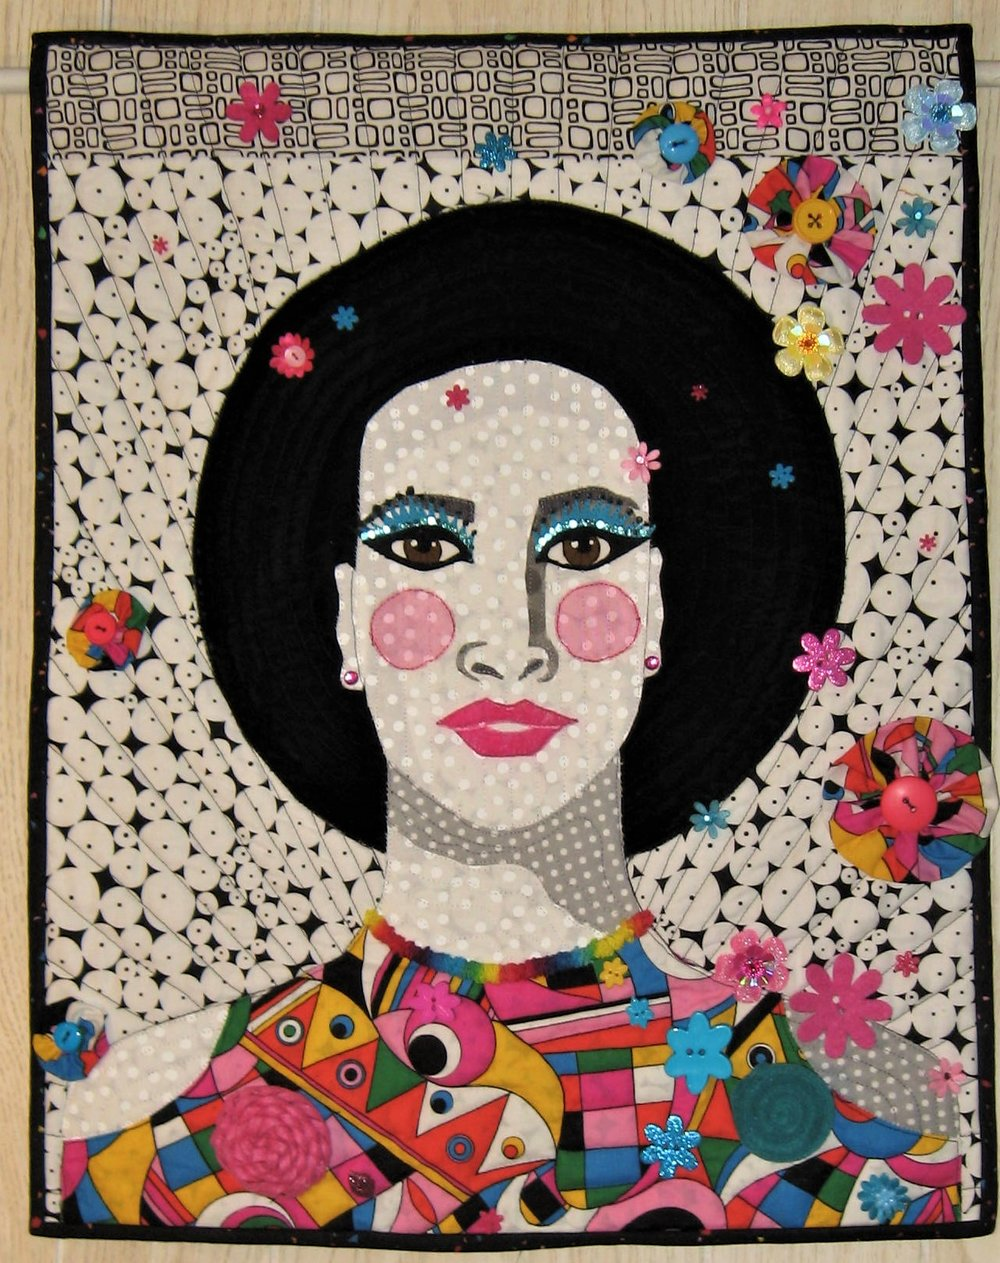 "I have had the pleasure of being selected as one of the ""Celebrity Quilters"" who have been asked to create a piece for the International Quilt Association's Mini Silent Auction quilted wall hangings which will be at the International Quilt Festival this November at Houston. These donation quilts help raise money for the association. I feel honored to be selected and am thrilled many thousands of people will view these quilts. It is hard to give this one up but I have the pattern if I want to make another version!!  I am loving Pop Art and found an image on Pinterest that inspired this quilt. I used velvet for the hair and mouth and pink tulle for the cheeks. I pulled many of my pink and turquoise flower embellishments and hand sewed them to this quilt. I have a fun rainbow trim that can be rusched by pulling the inner thread. I hand tacked some to the dress neckline. I made 5 fabric yo yos from the remainder of the ""mod"" dress fabric. The eyes were detailed with white matte fabric paint, brown Pigma Micron marker for the irises, black paint on the ends of the eyelashes and turquoise sequins glued to the eye for eyeliner."